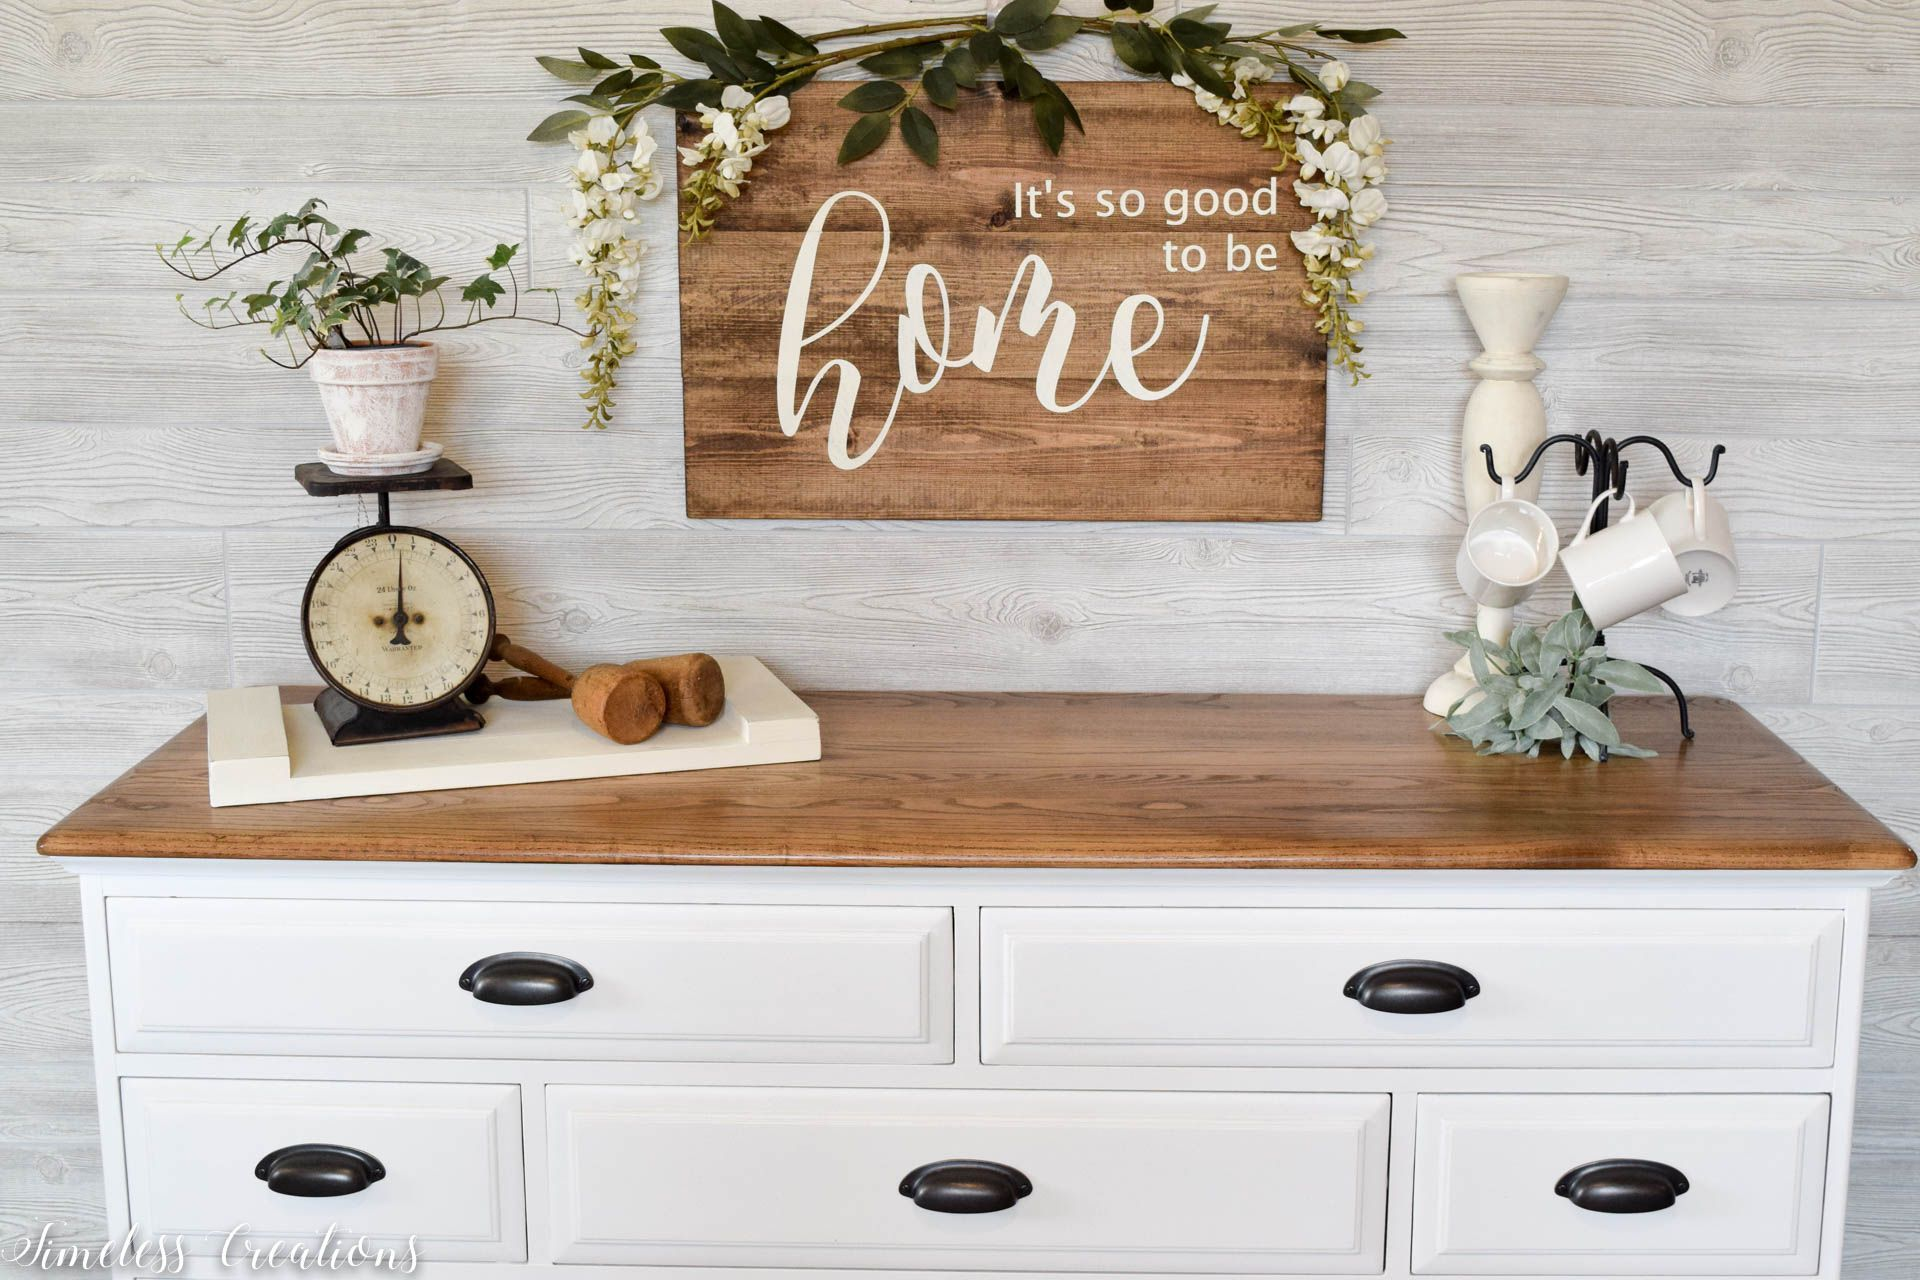 The Epitome Of Farmhouse Style White And Wood Dresser Timeless Creations White Bedroom Furniture With Wood Top White Painted Furniture Wood Dresser White and natural wood dresser